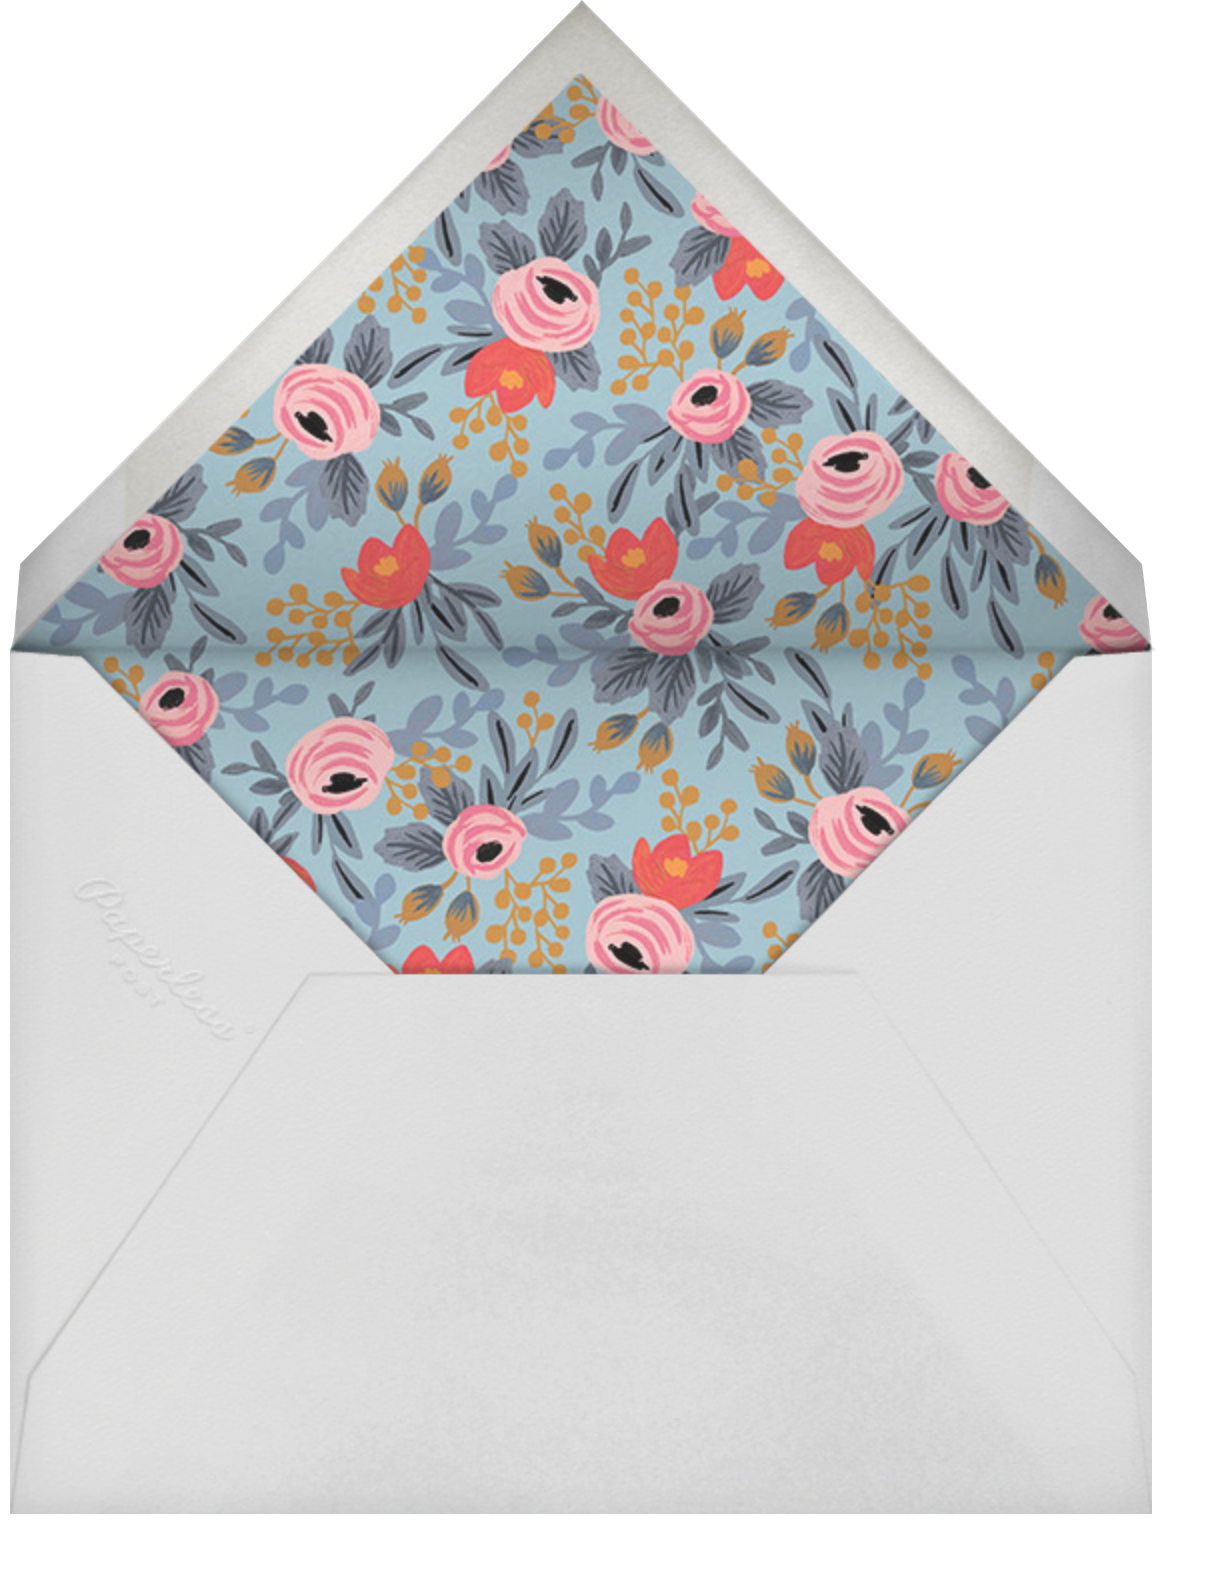 Year in Bloom (Landscape Photo) - White - Rifle Paper Co. - Graduation - envelope back